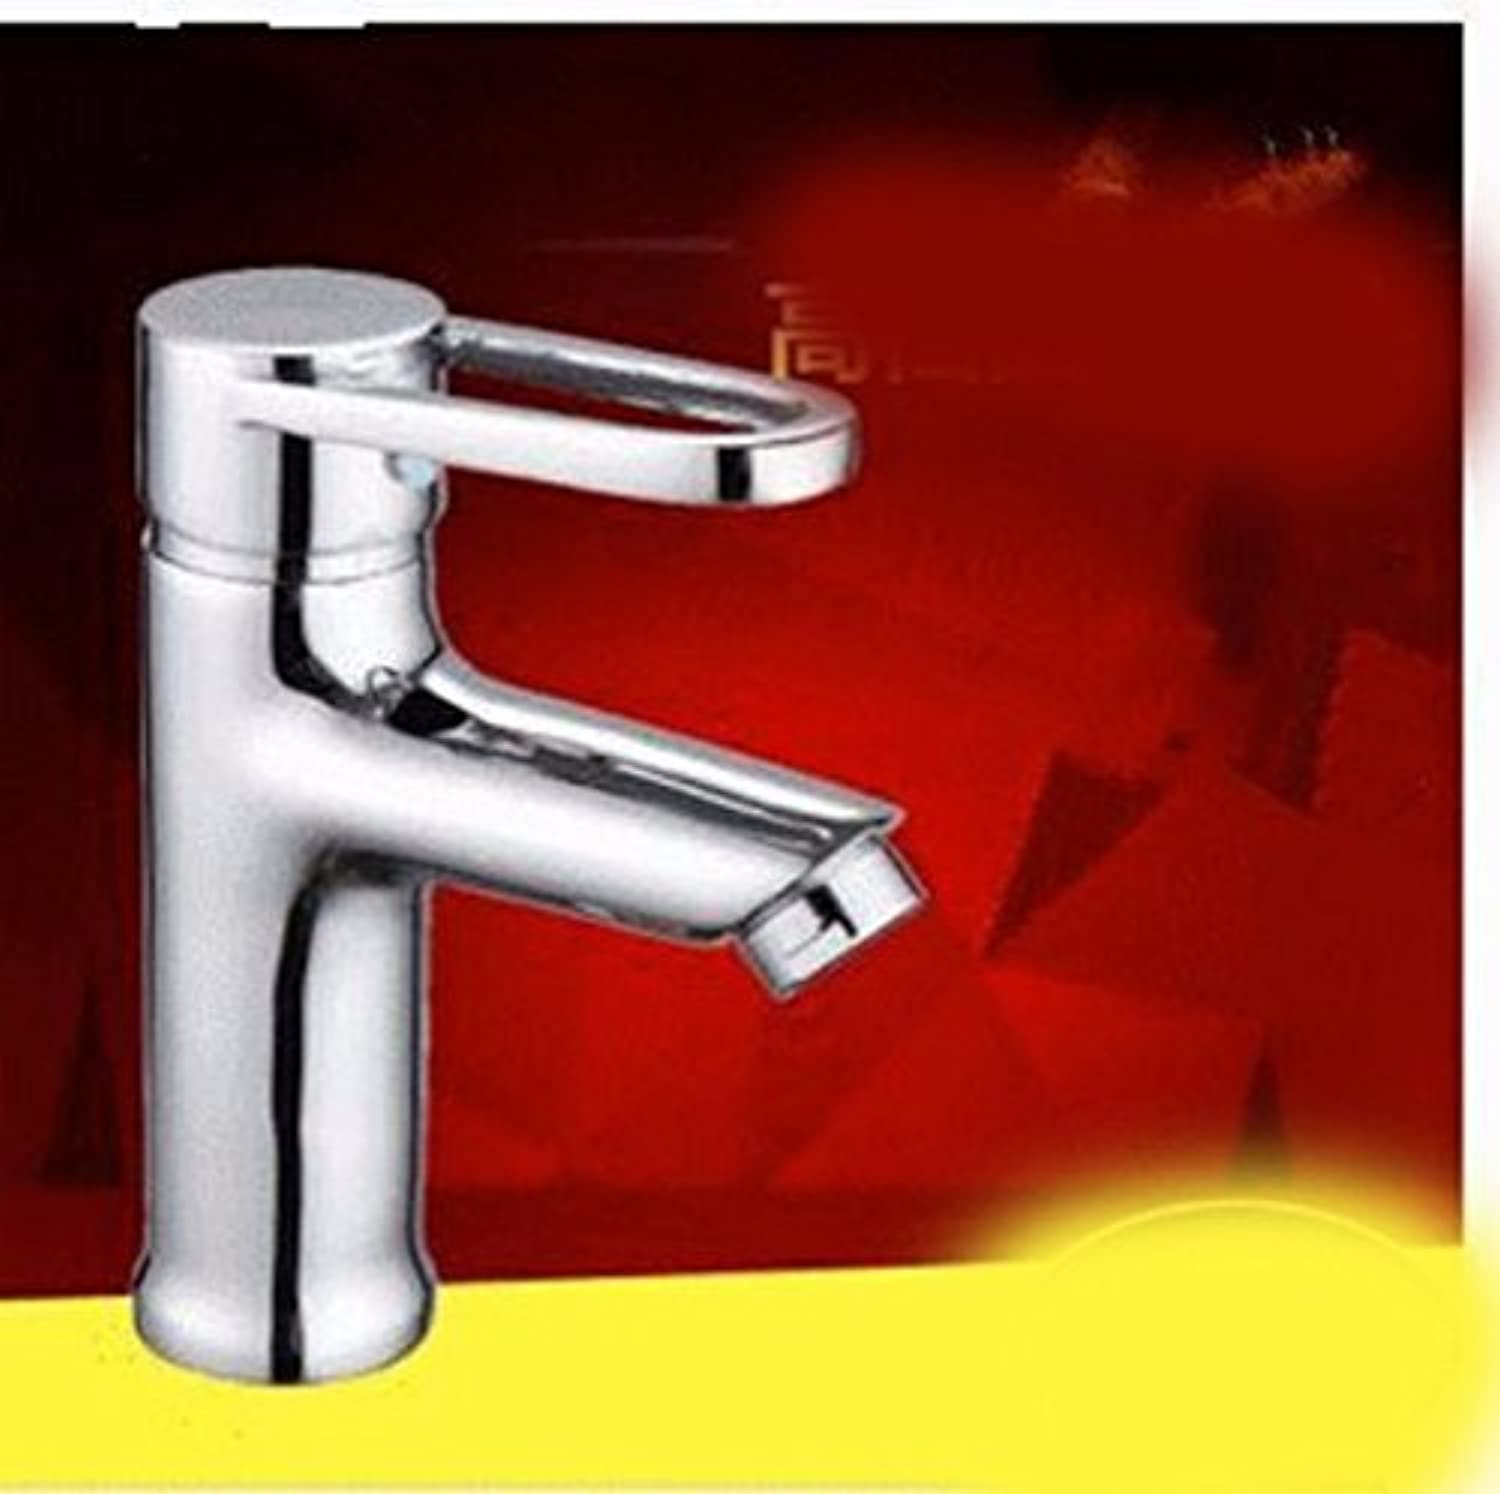 Hlluya Professional Sink Mixer Tap Kitchen Faucet Stainless Steel, hot and cold, washing your face, turn to high, the kitchen sink faucet 4